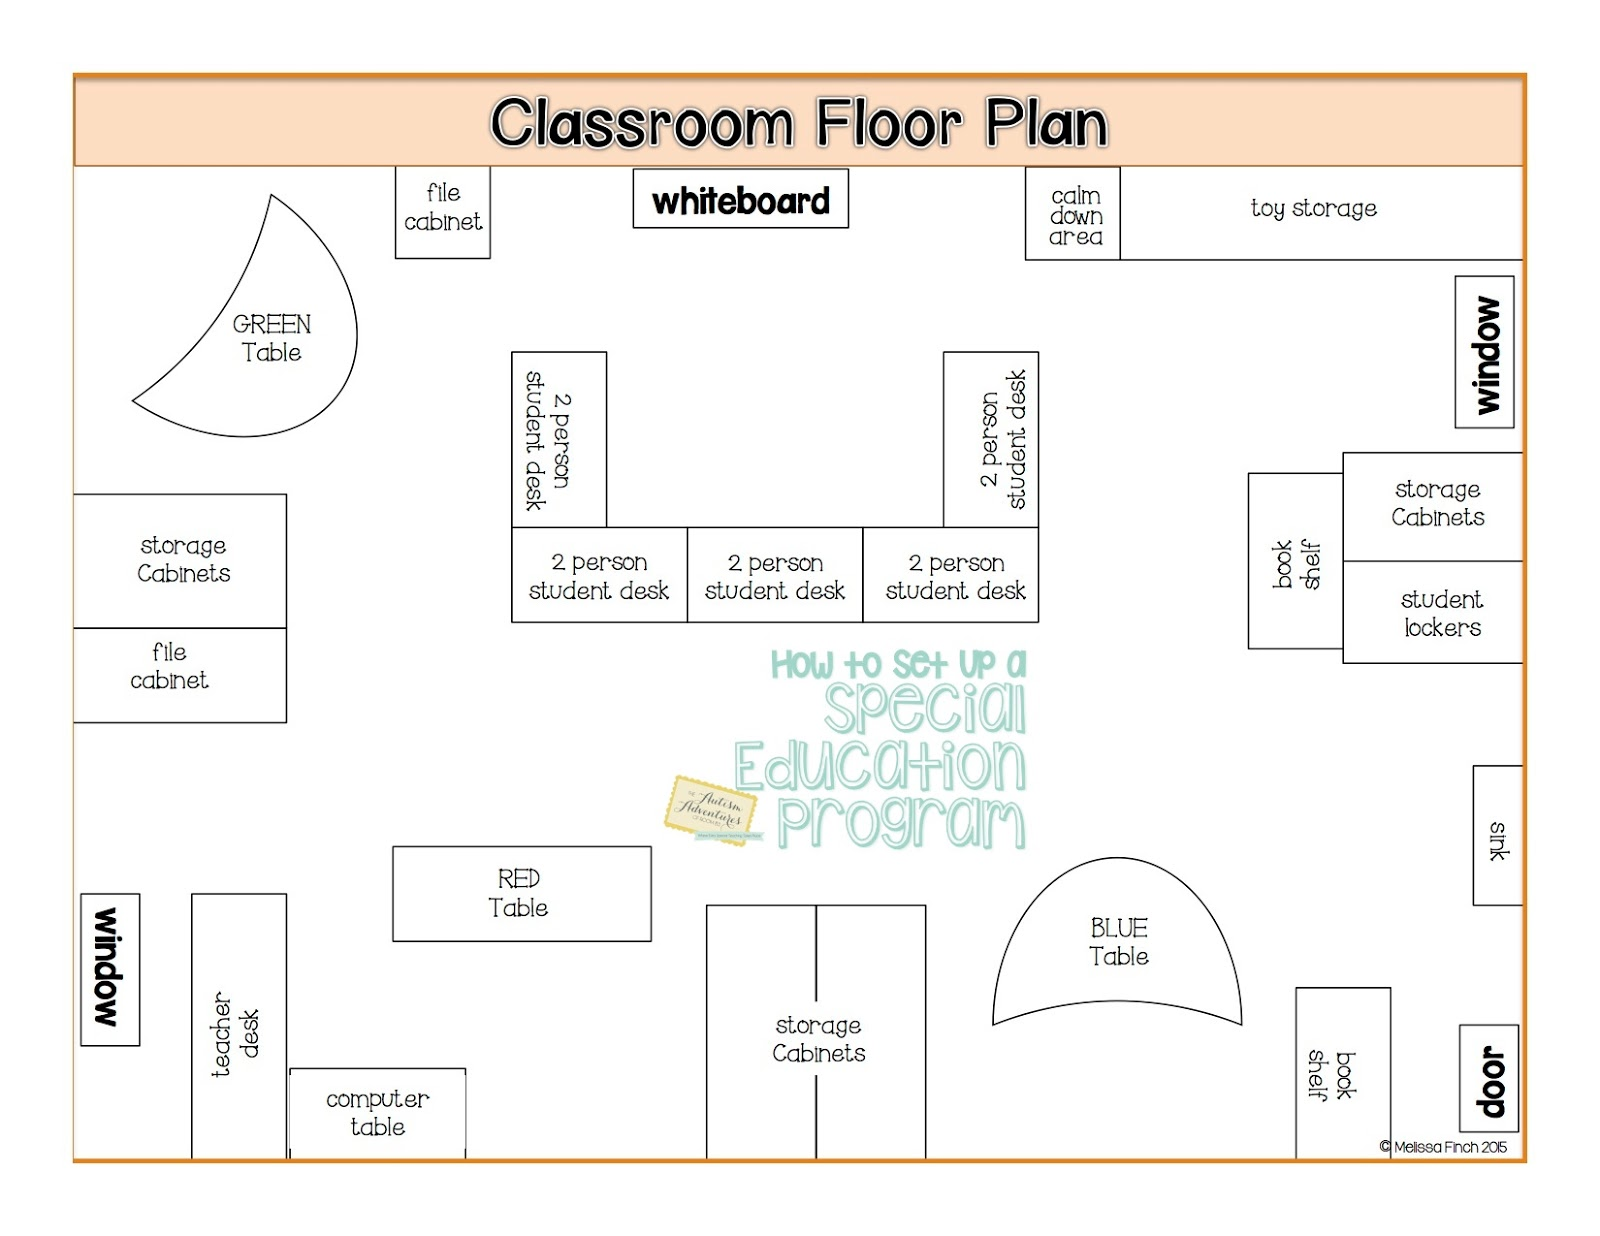 Classroom Design Effect On Learning : Quot how to set up a special education program floor plans